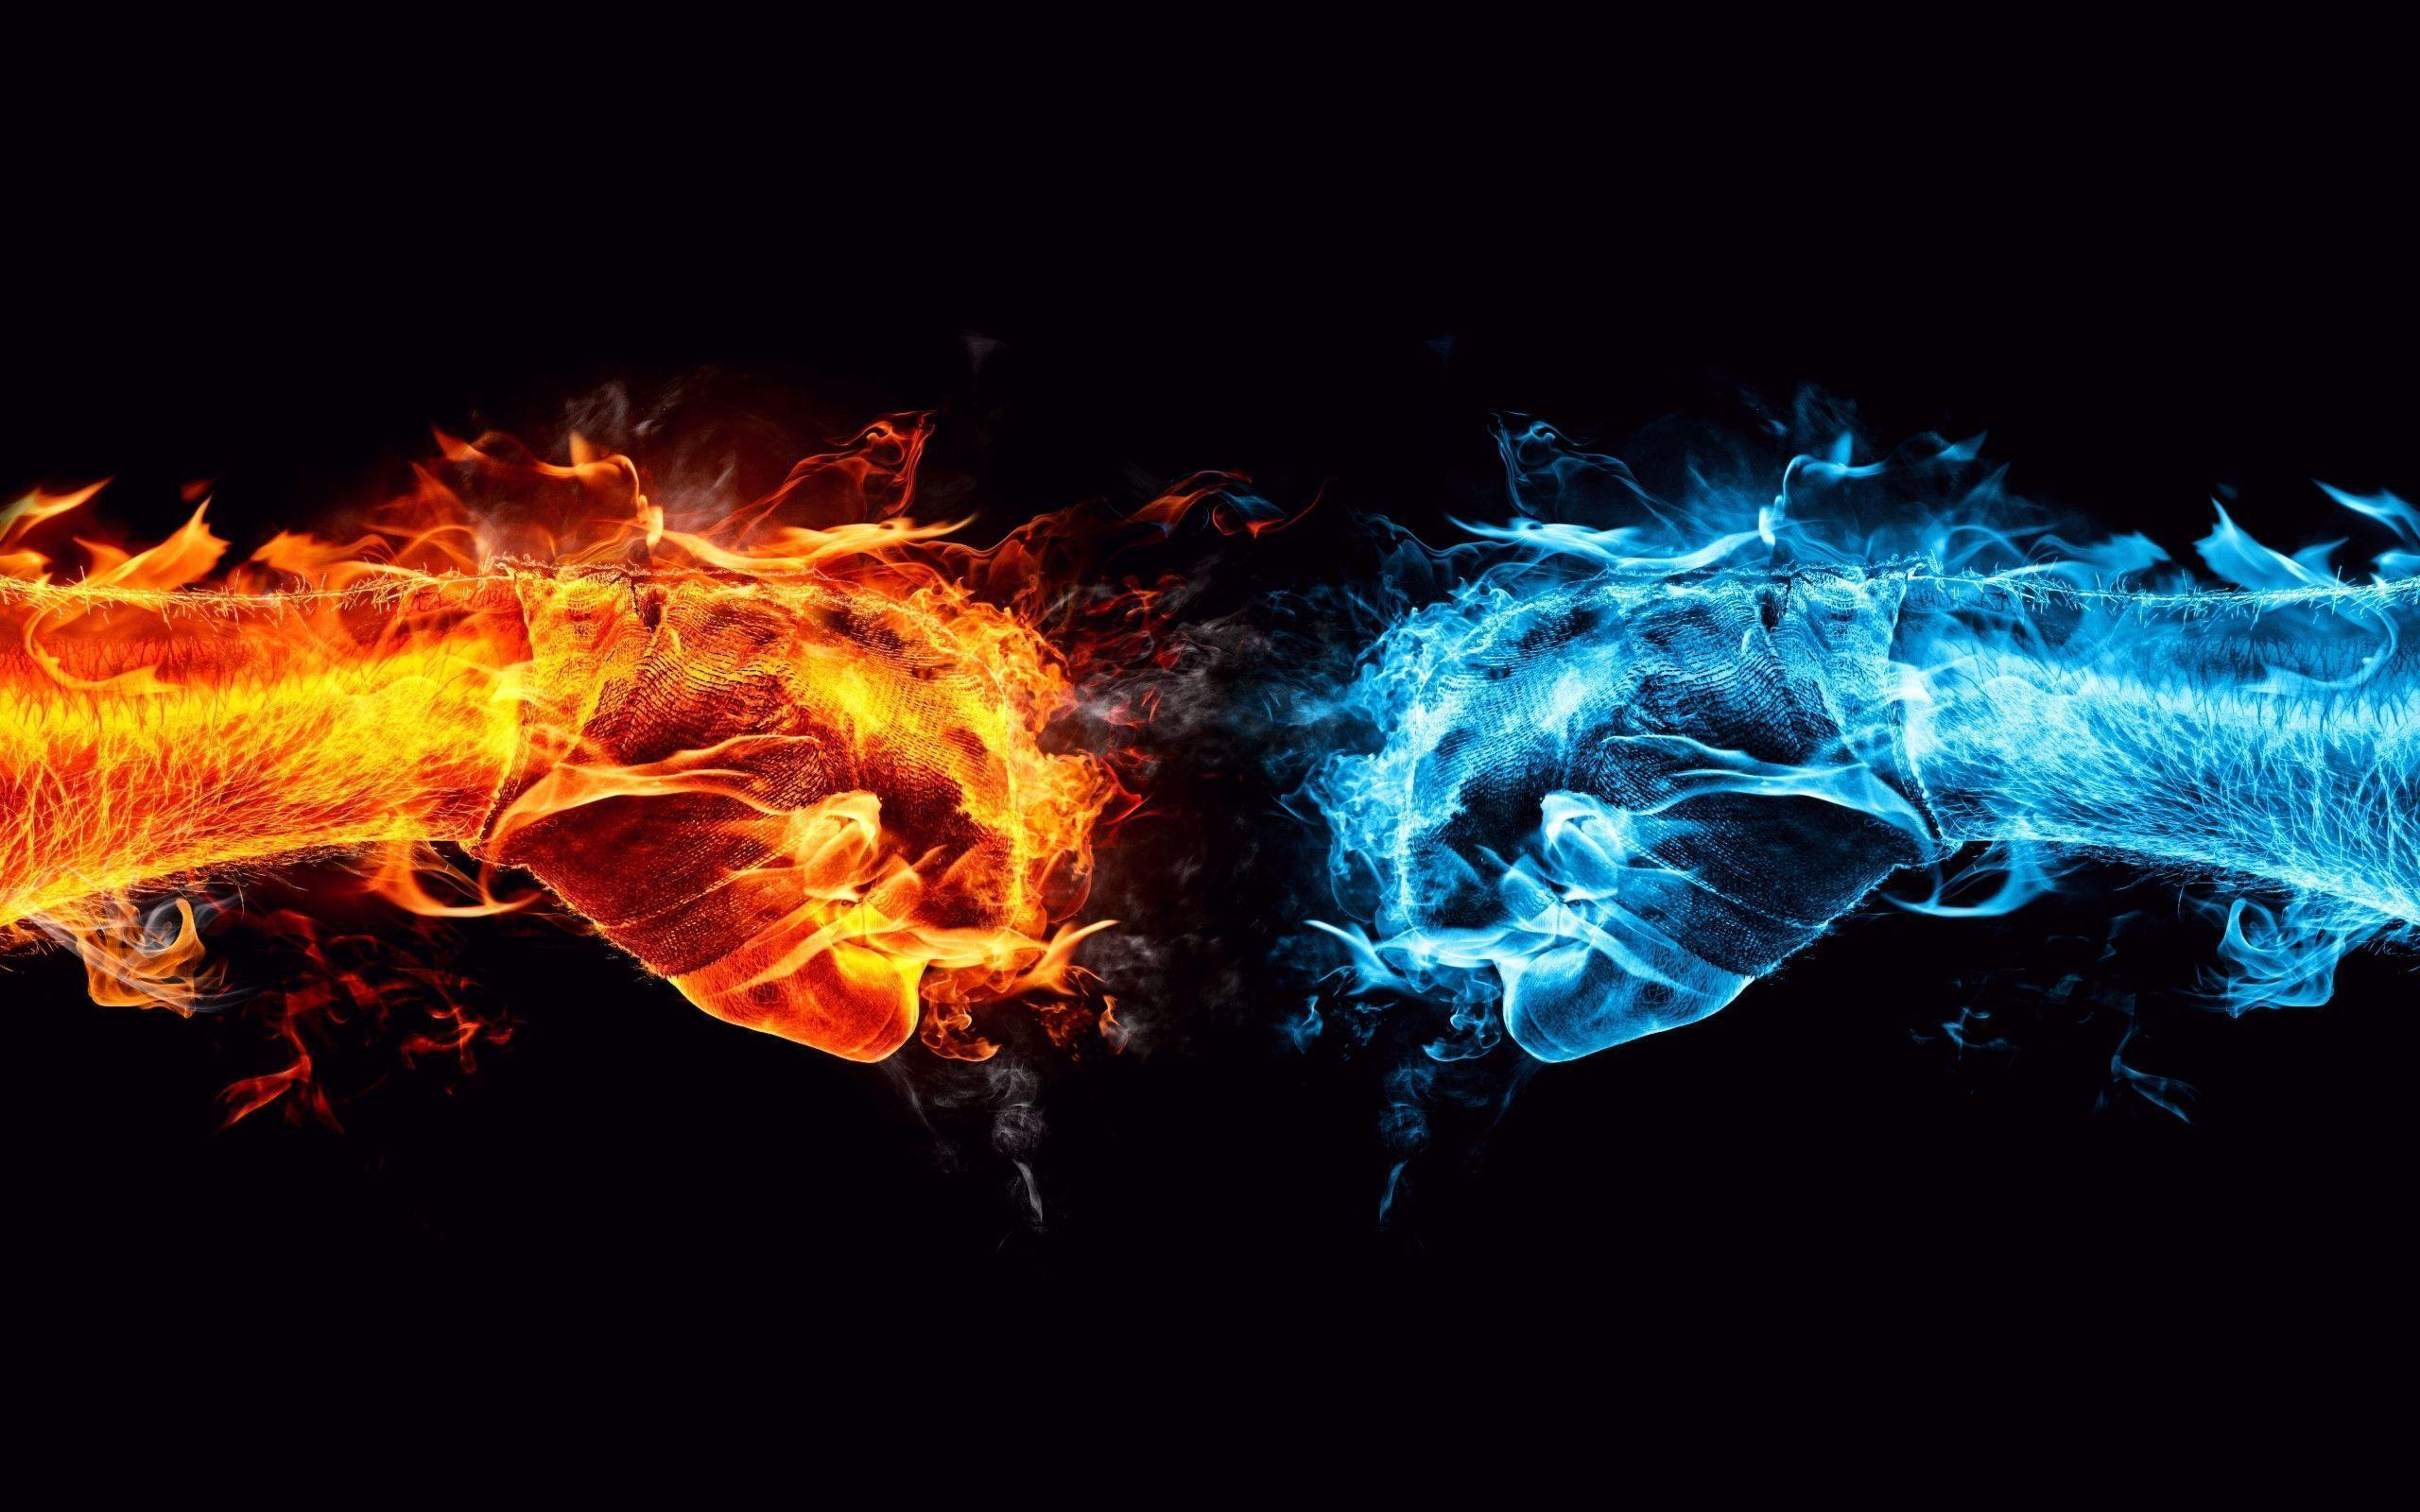 Black Flame Backgrounds Posted By Zoey Sellers